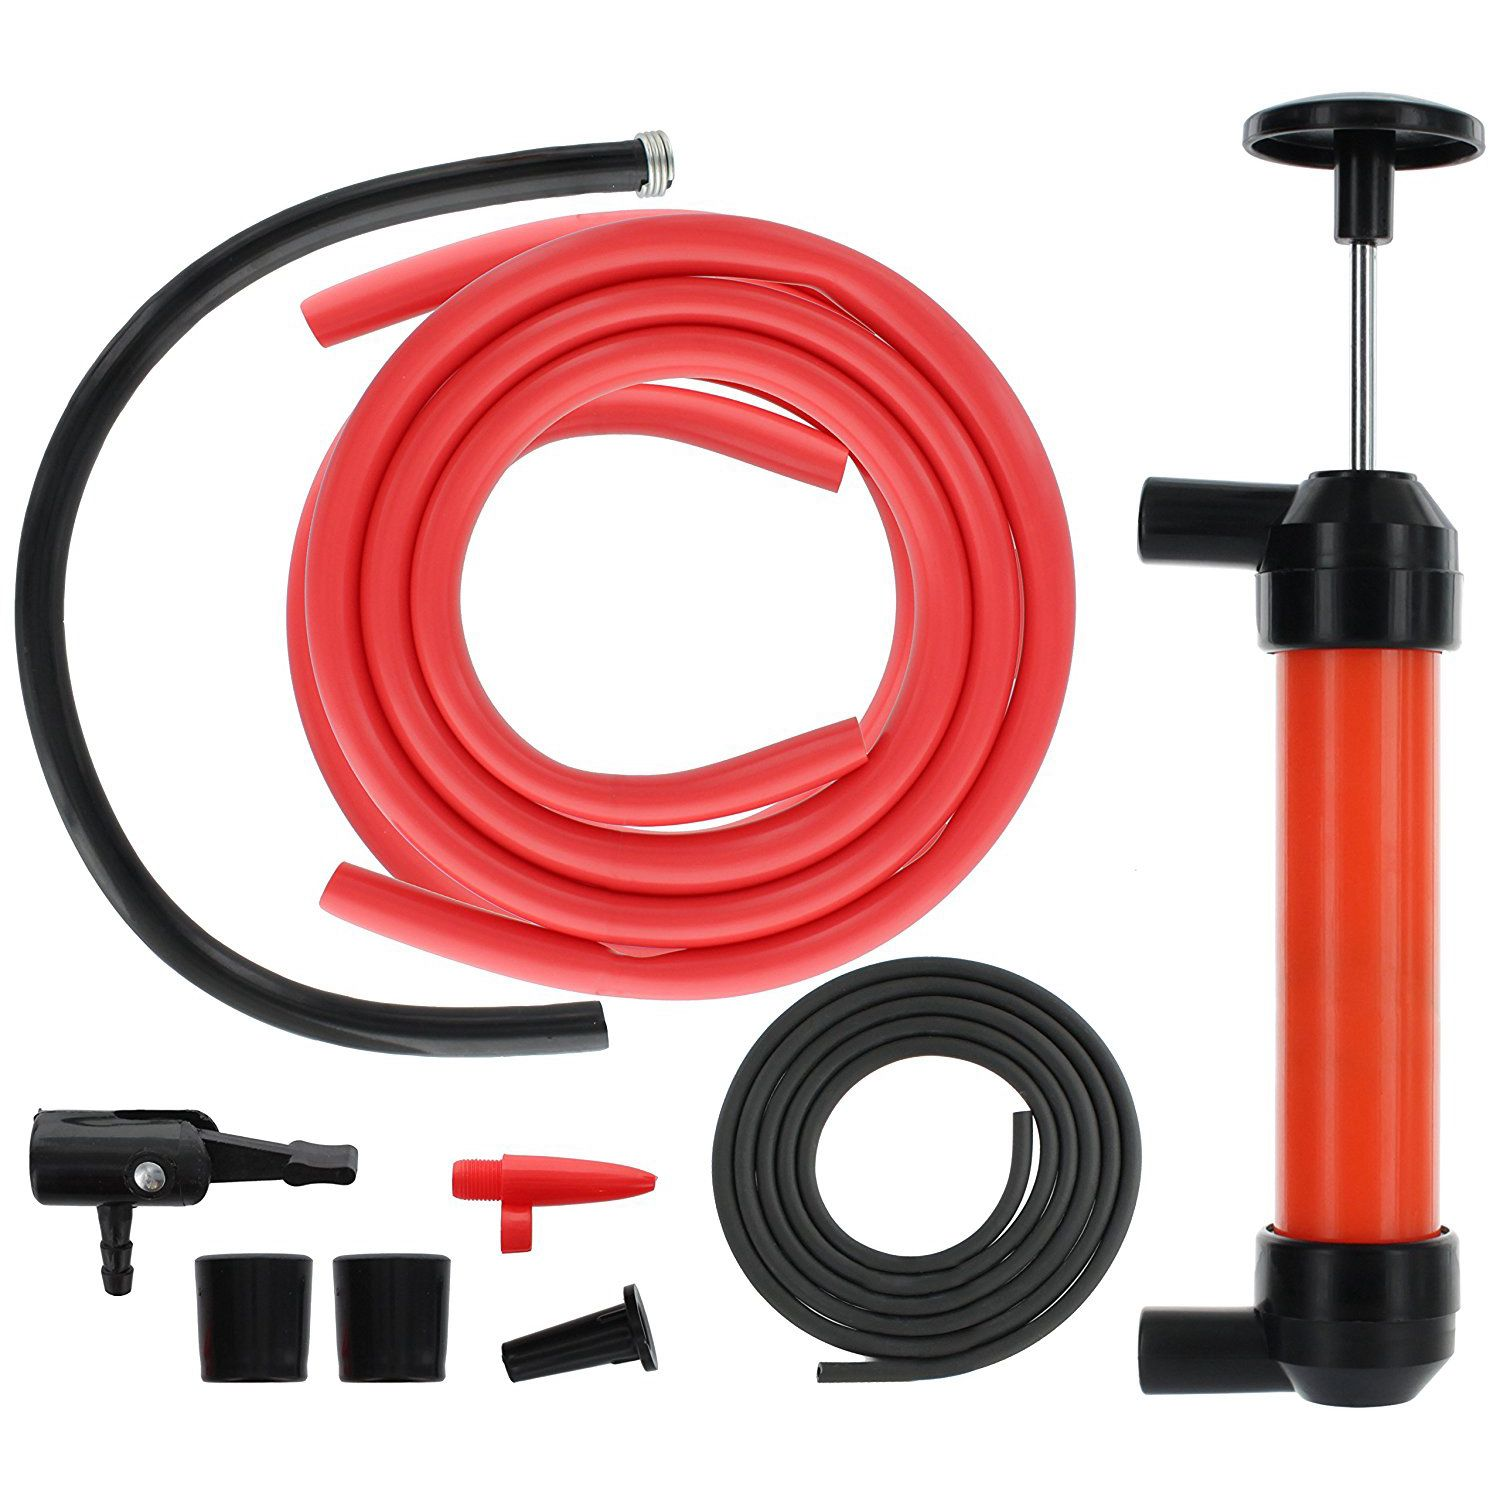 Portable Manual Oil Pump Siphon Tube Car Hose Fuel Gas Extractor Transfer Sucker Inflatable Pump Tool